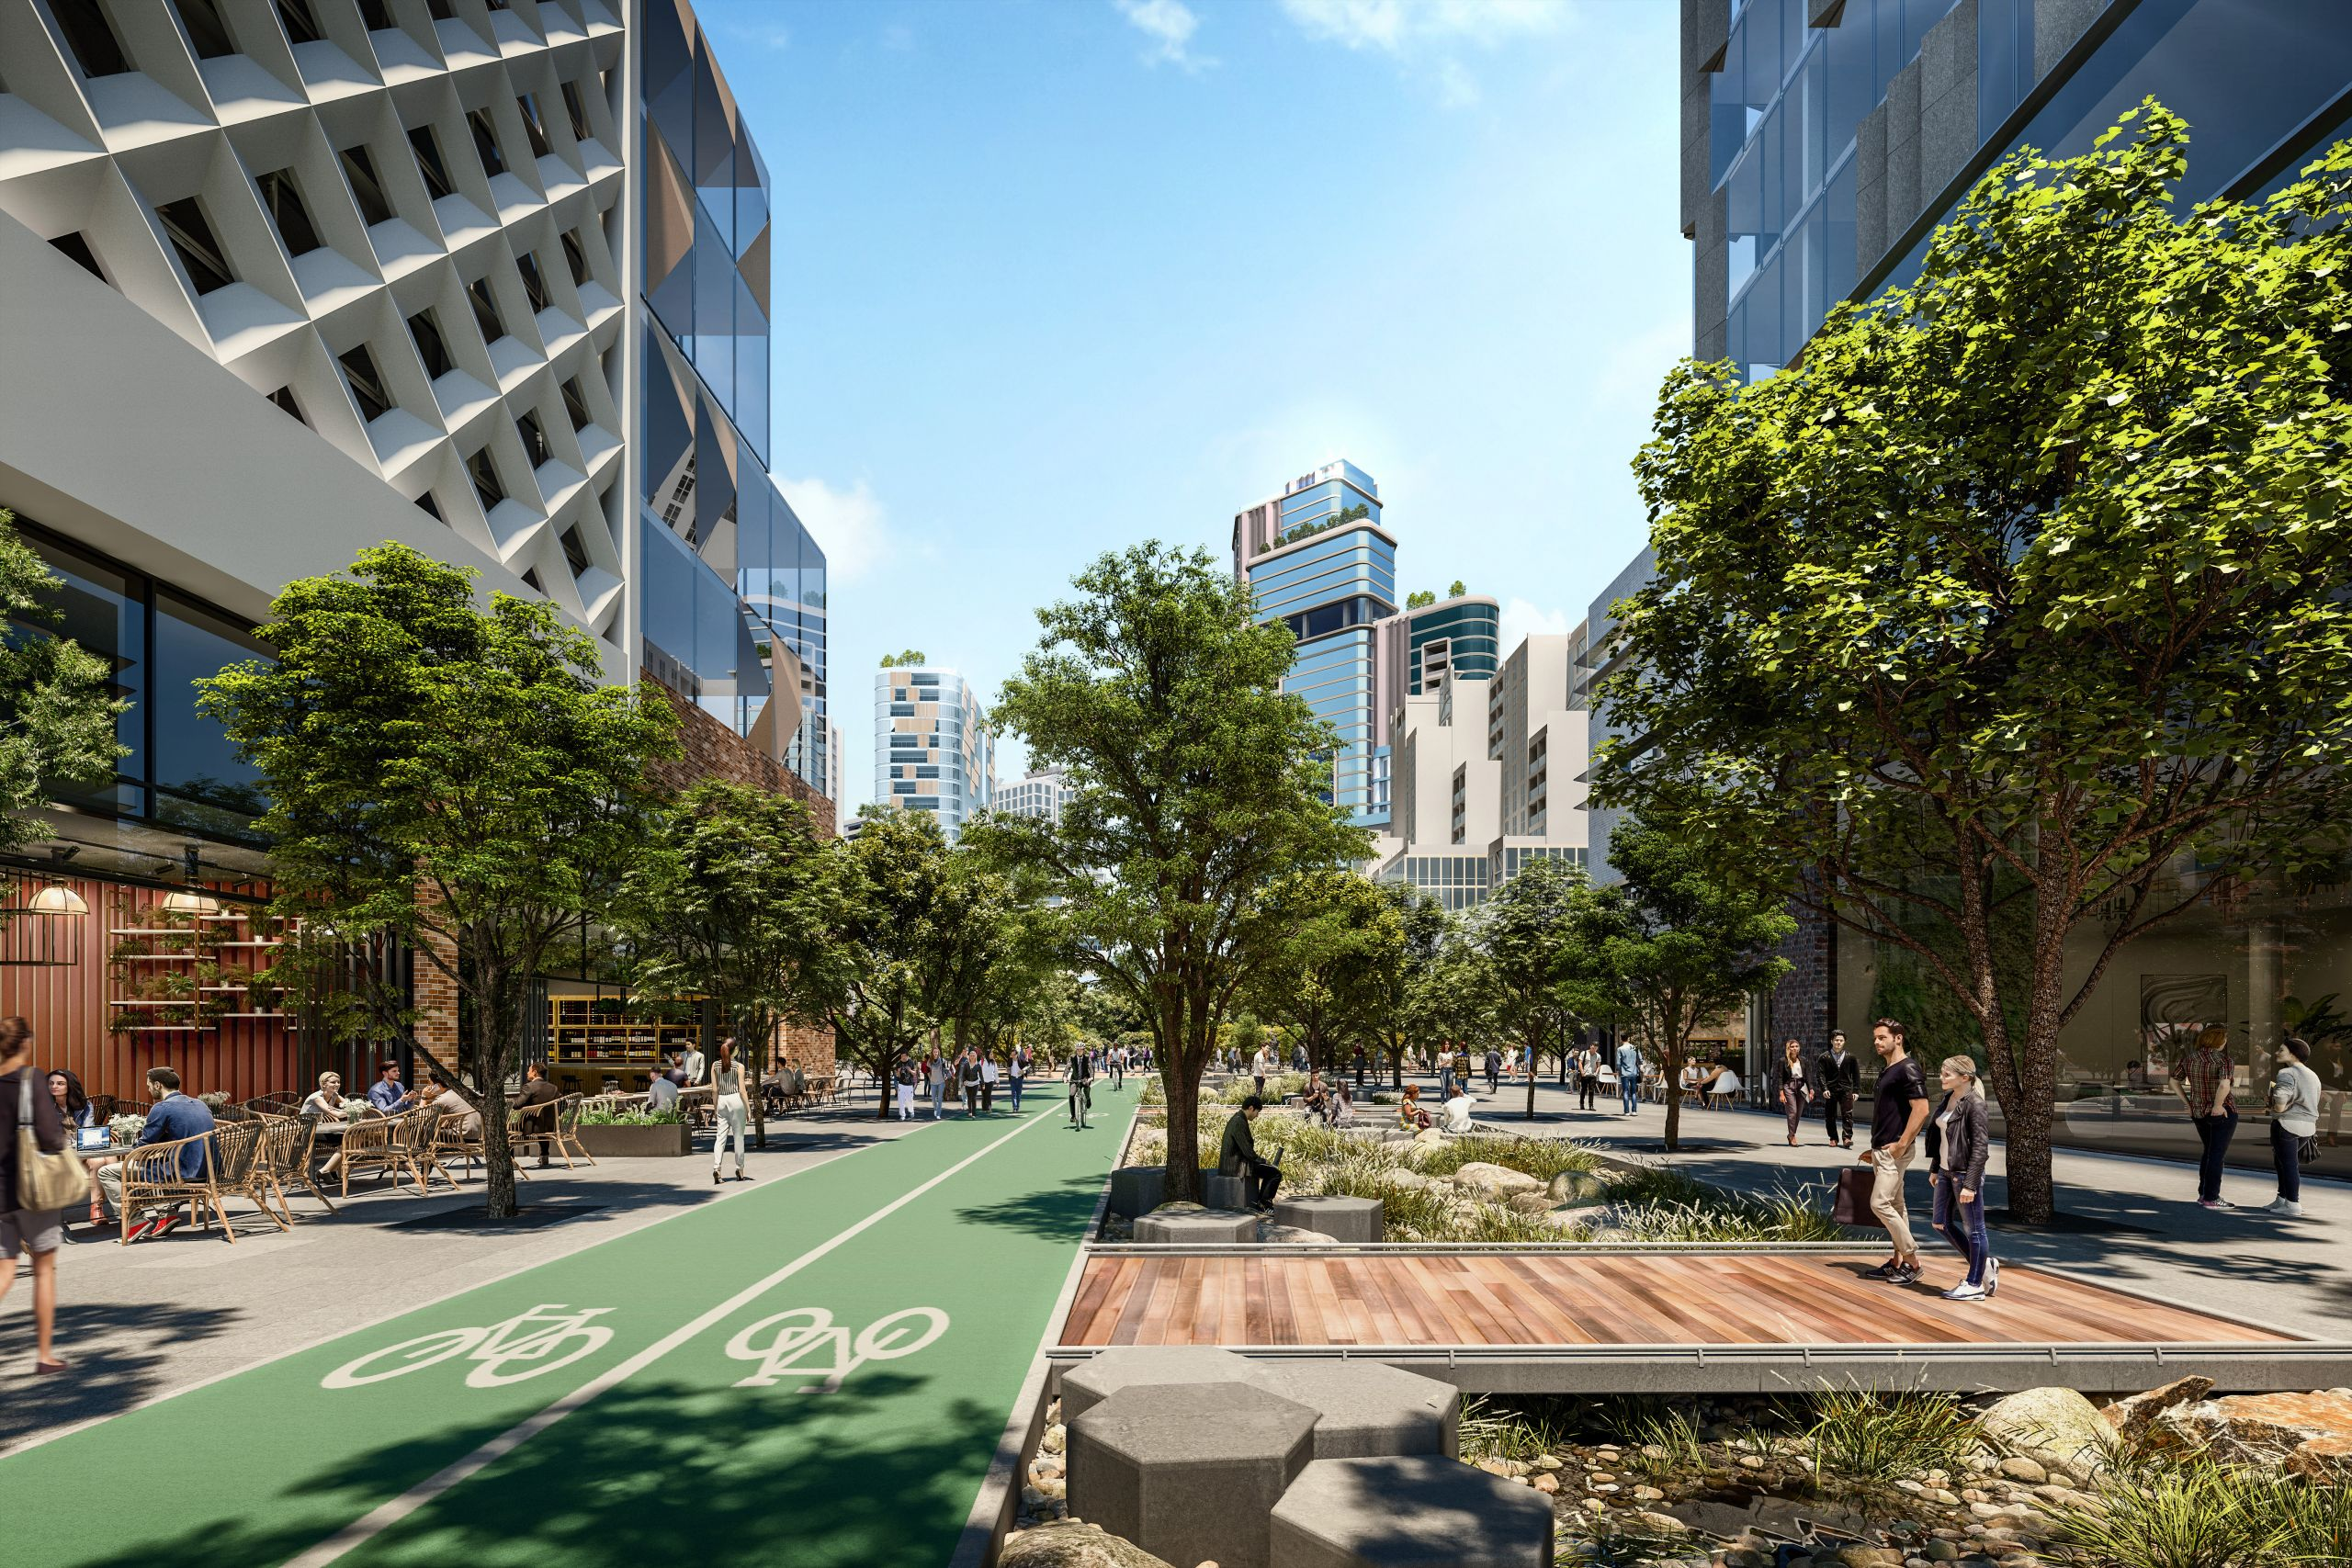 Artist impression of the future Arden precinct displaying public open space including cycle path, tree canopy and outdoor mixed-use areas